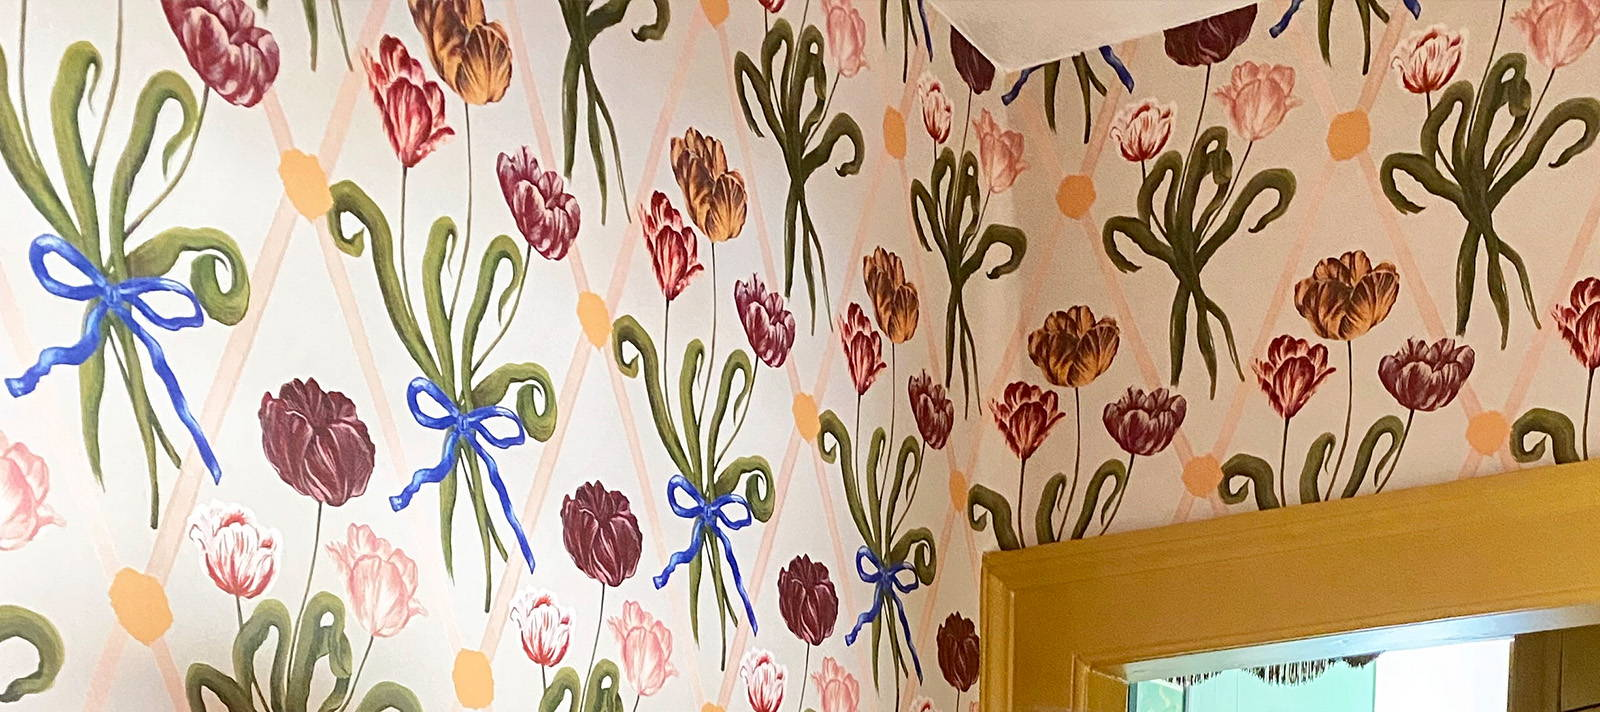 A close up of Polly Fern's wall paper featuring bows and flowers